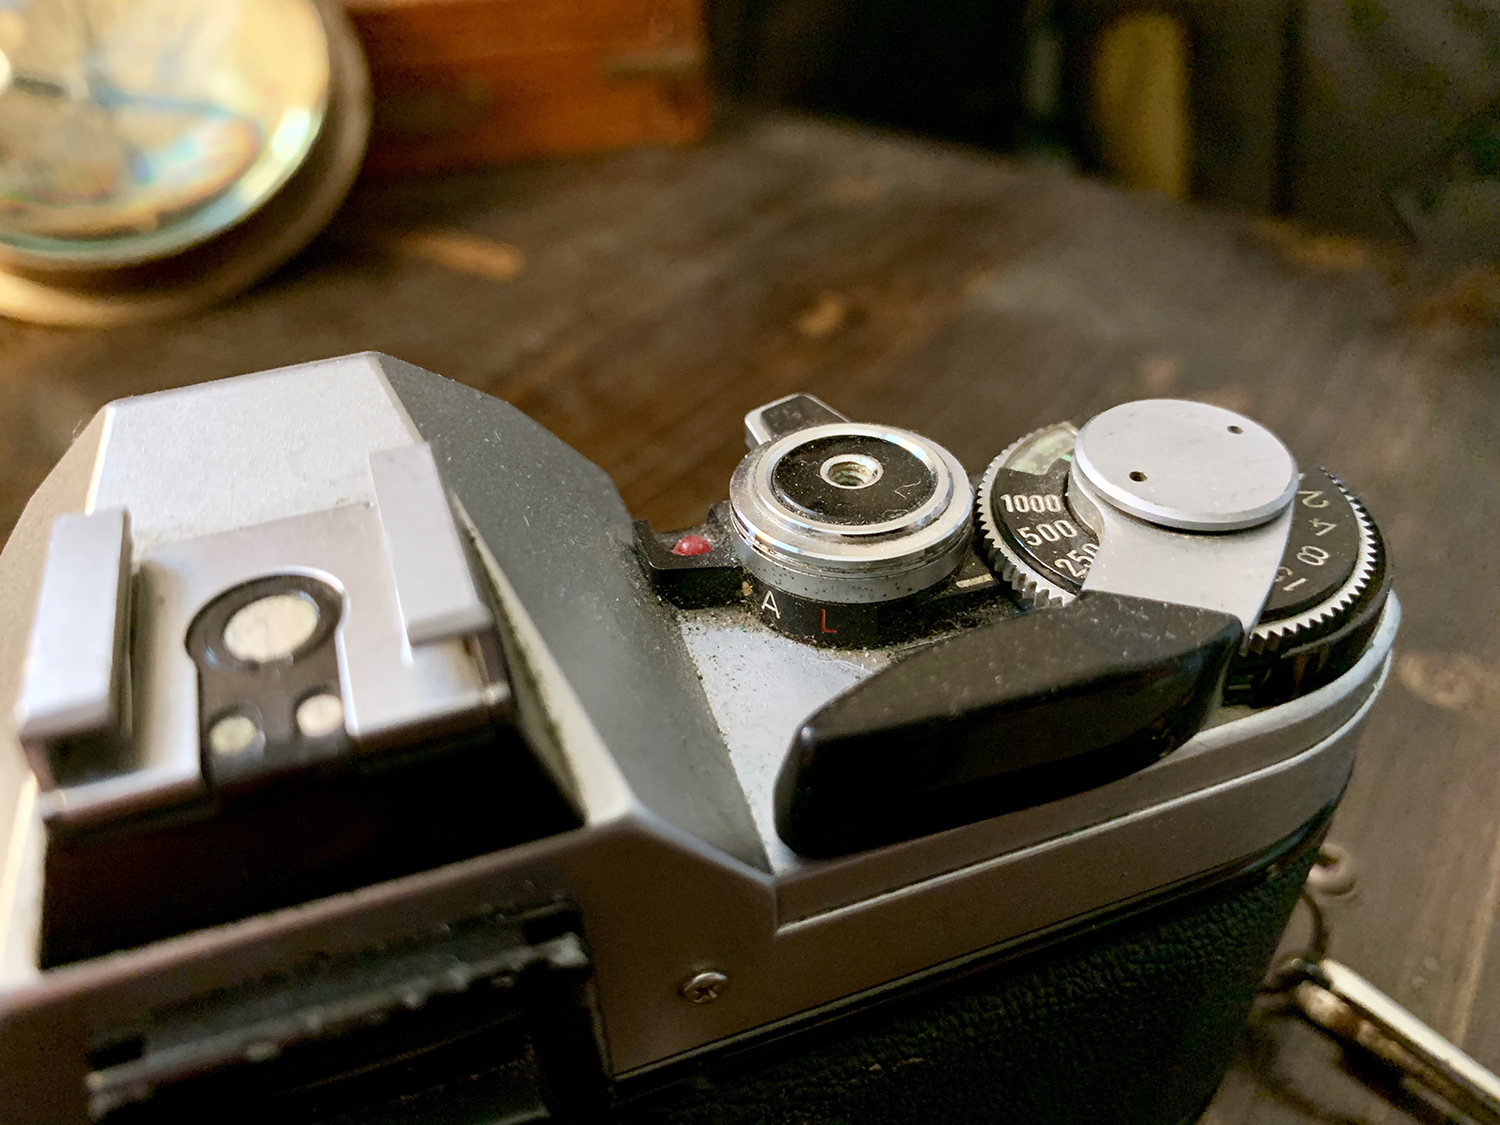 6 Film Photography Challenges that can Improve your Digital Photography